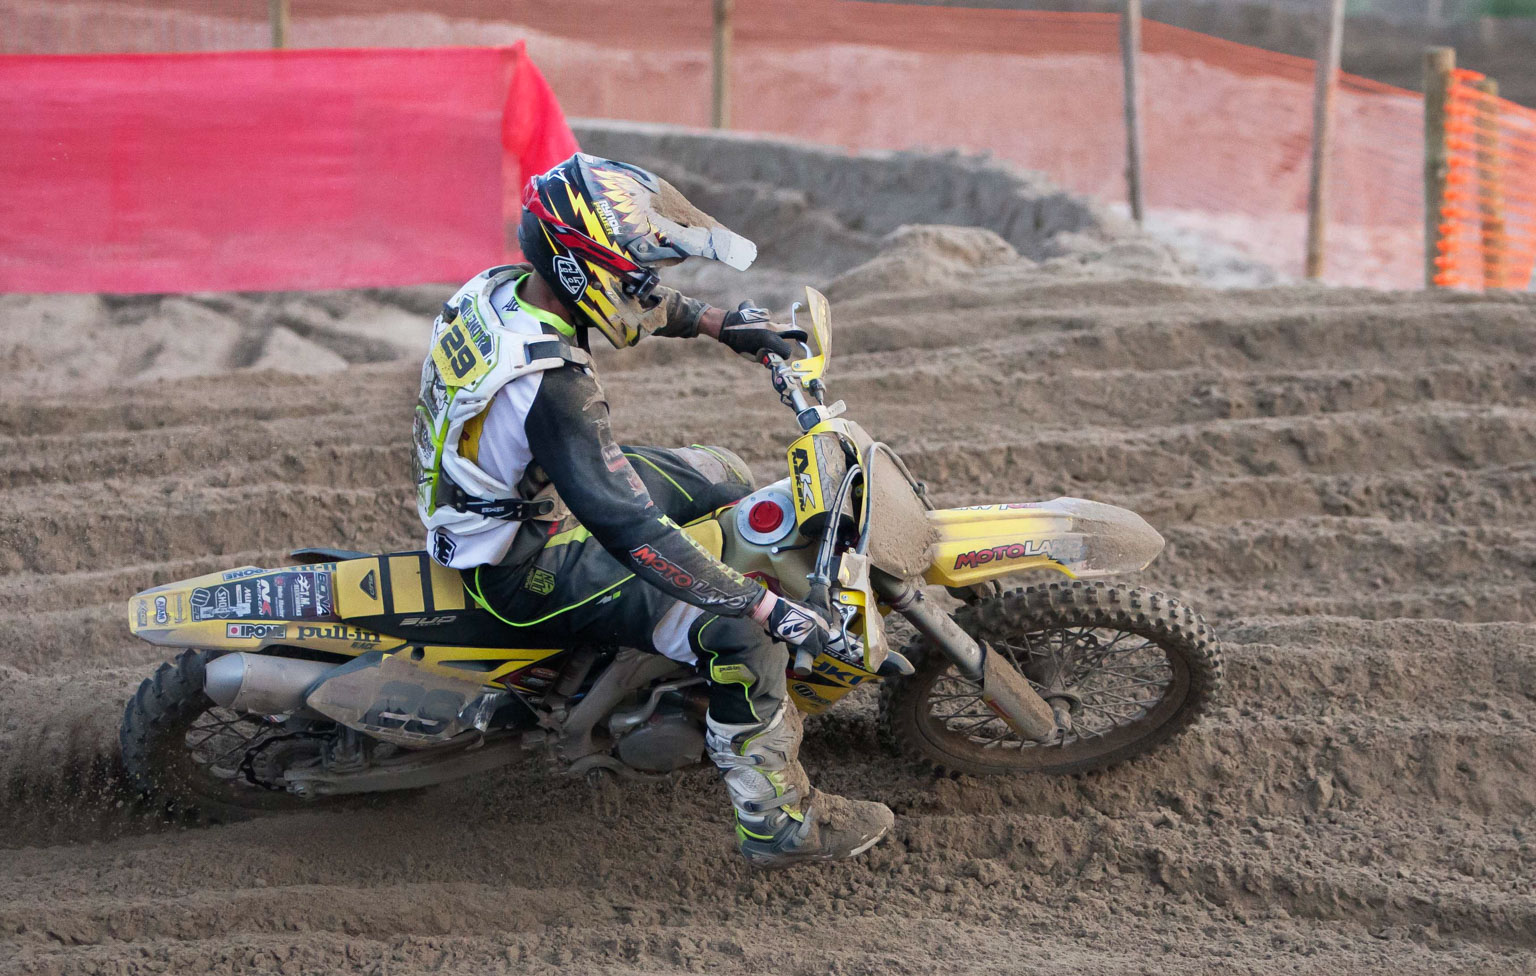 Steven Lenoir out on the Suzuki